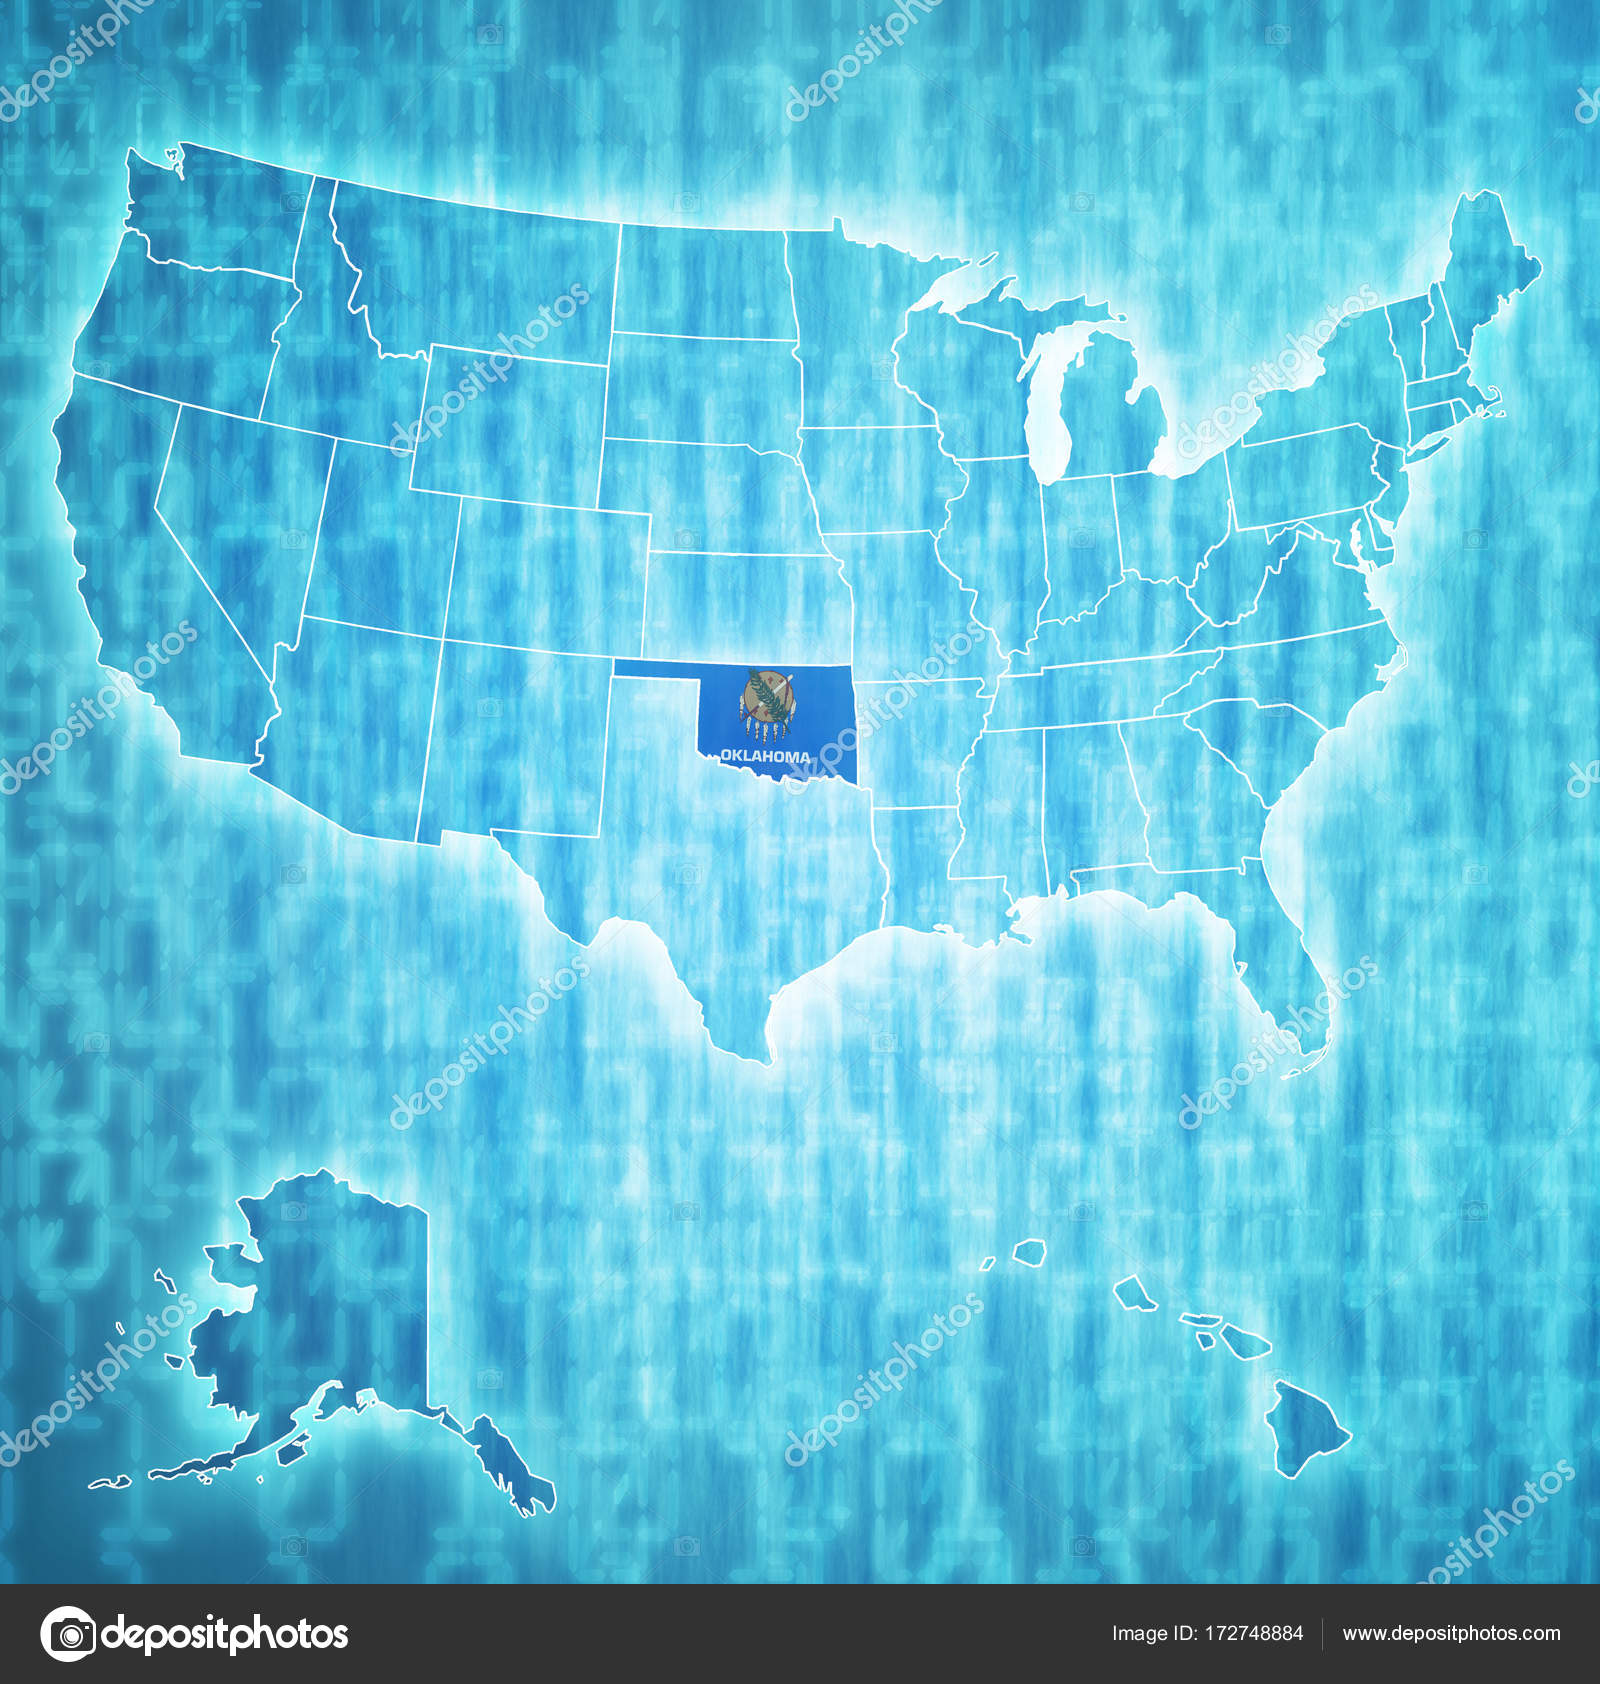 Oklahoma On Map Of United States.Oklahoma On Map Of Usa Stock Photo C Michal812 172748884